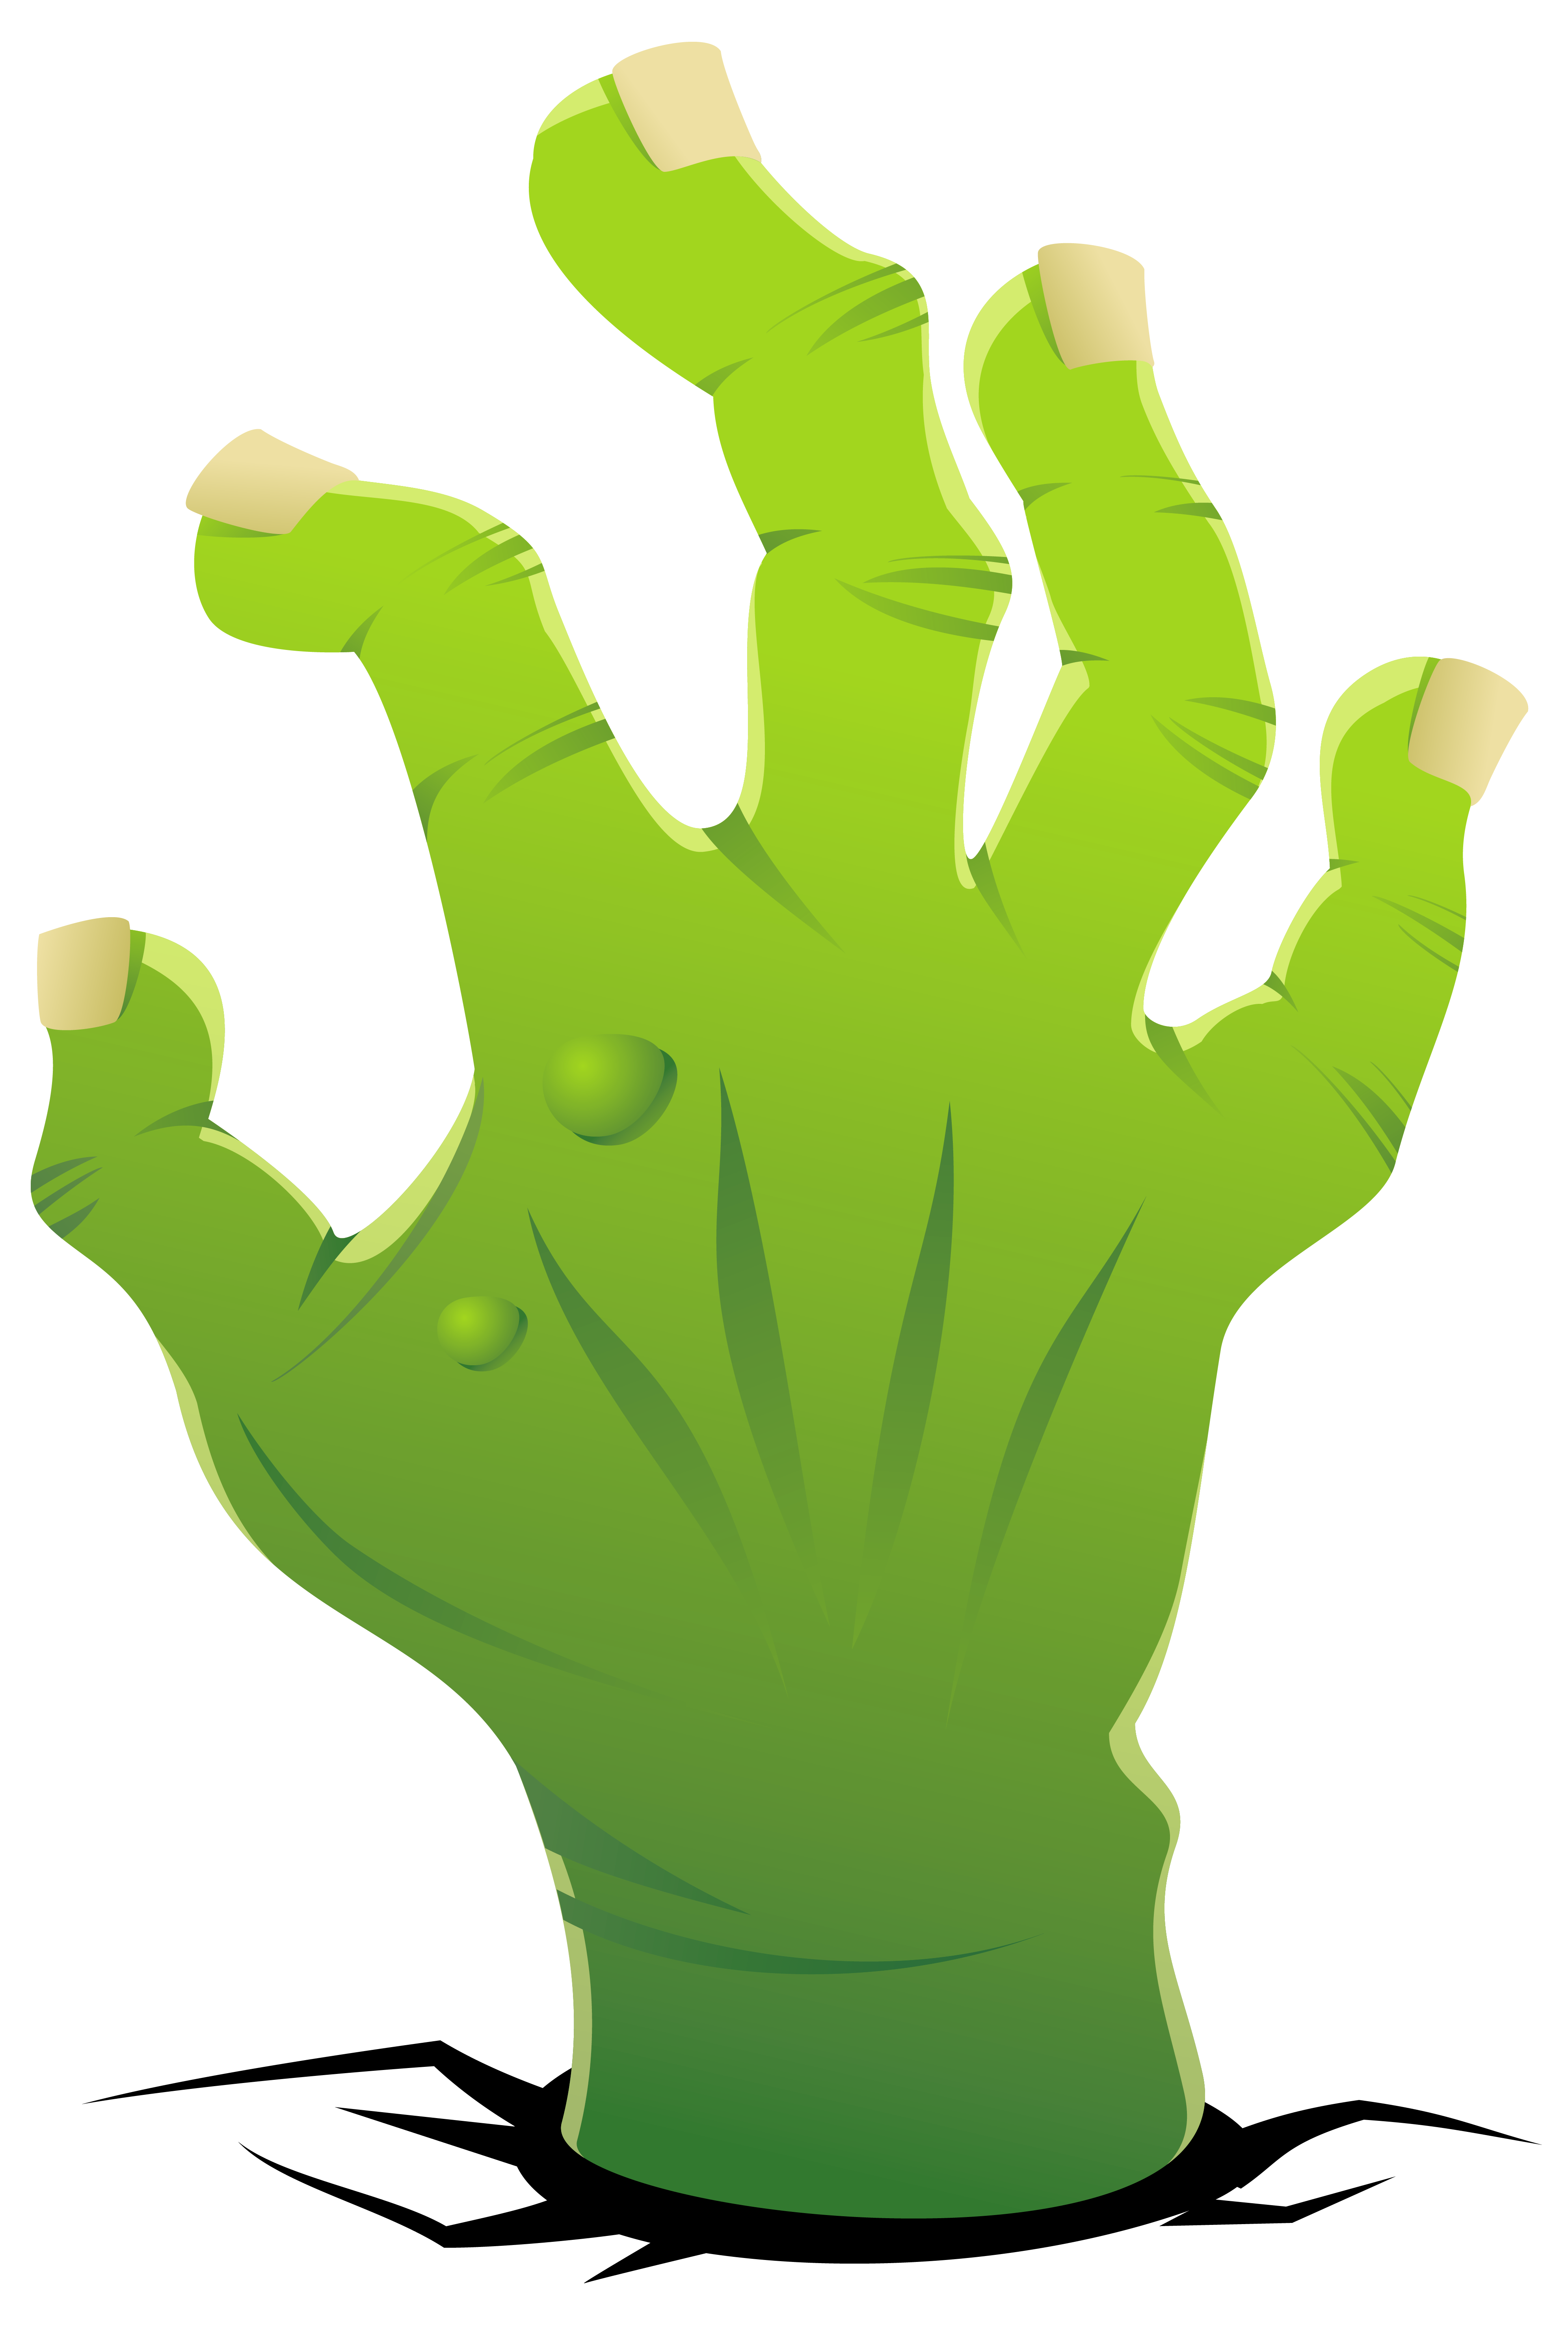 Zombie Hand Silhouette at GetDrawings | Free download